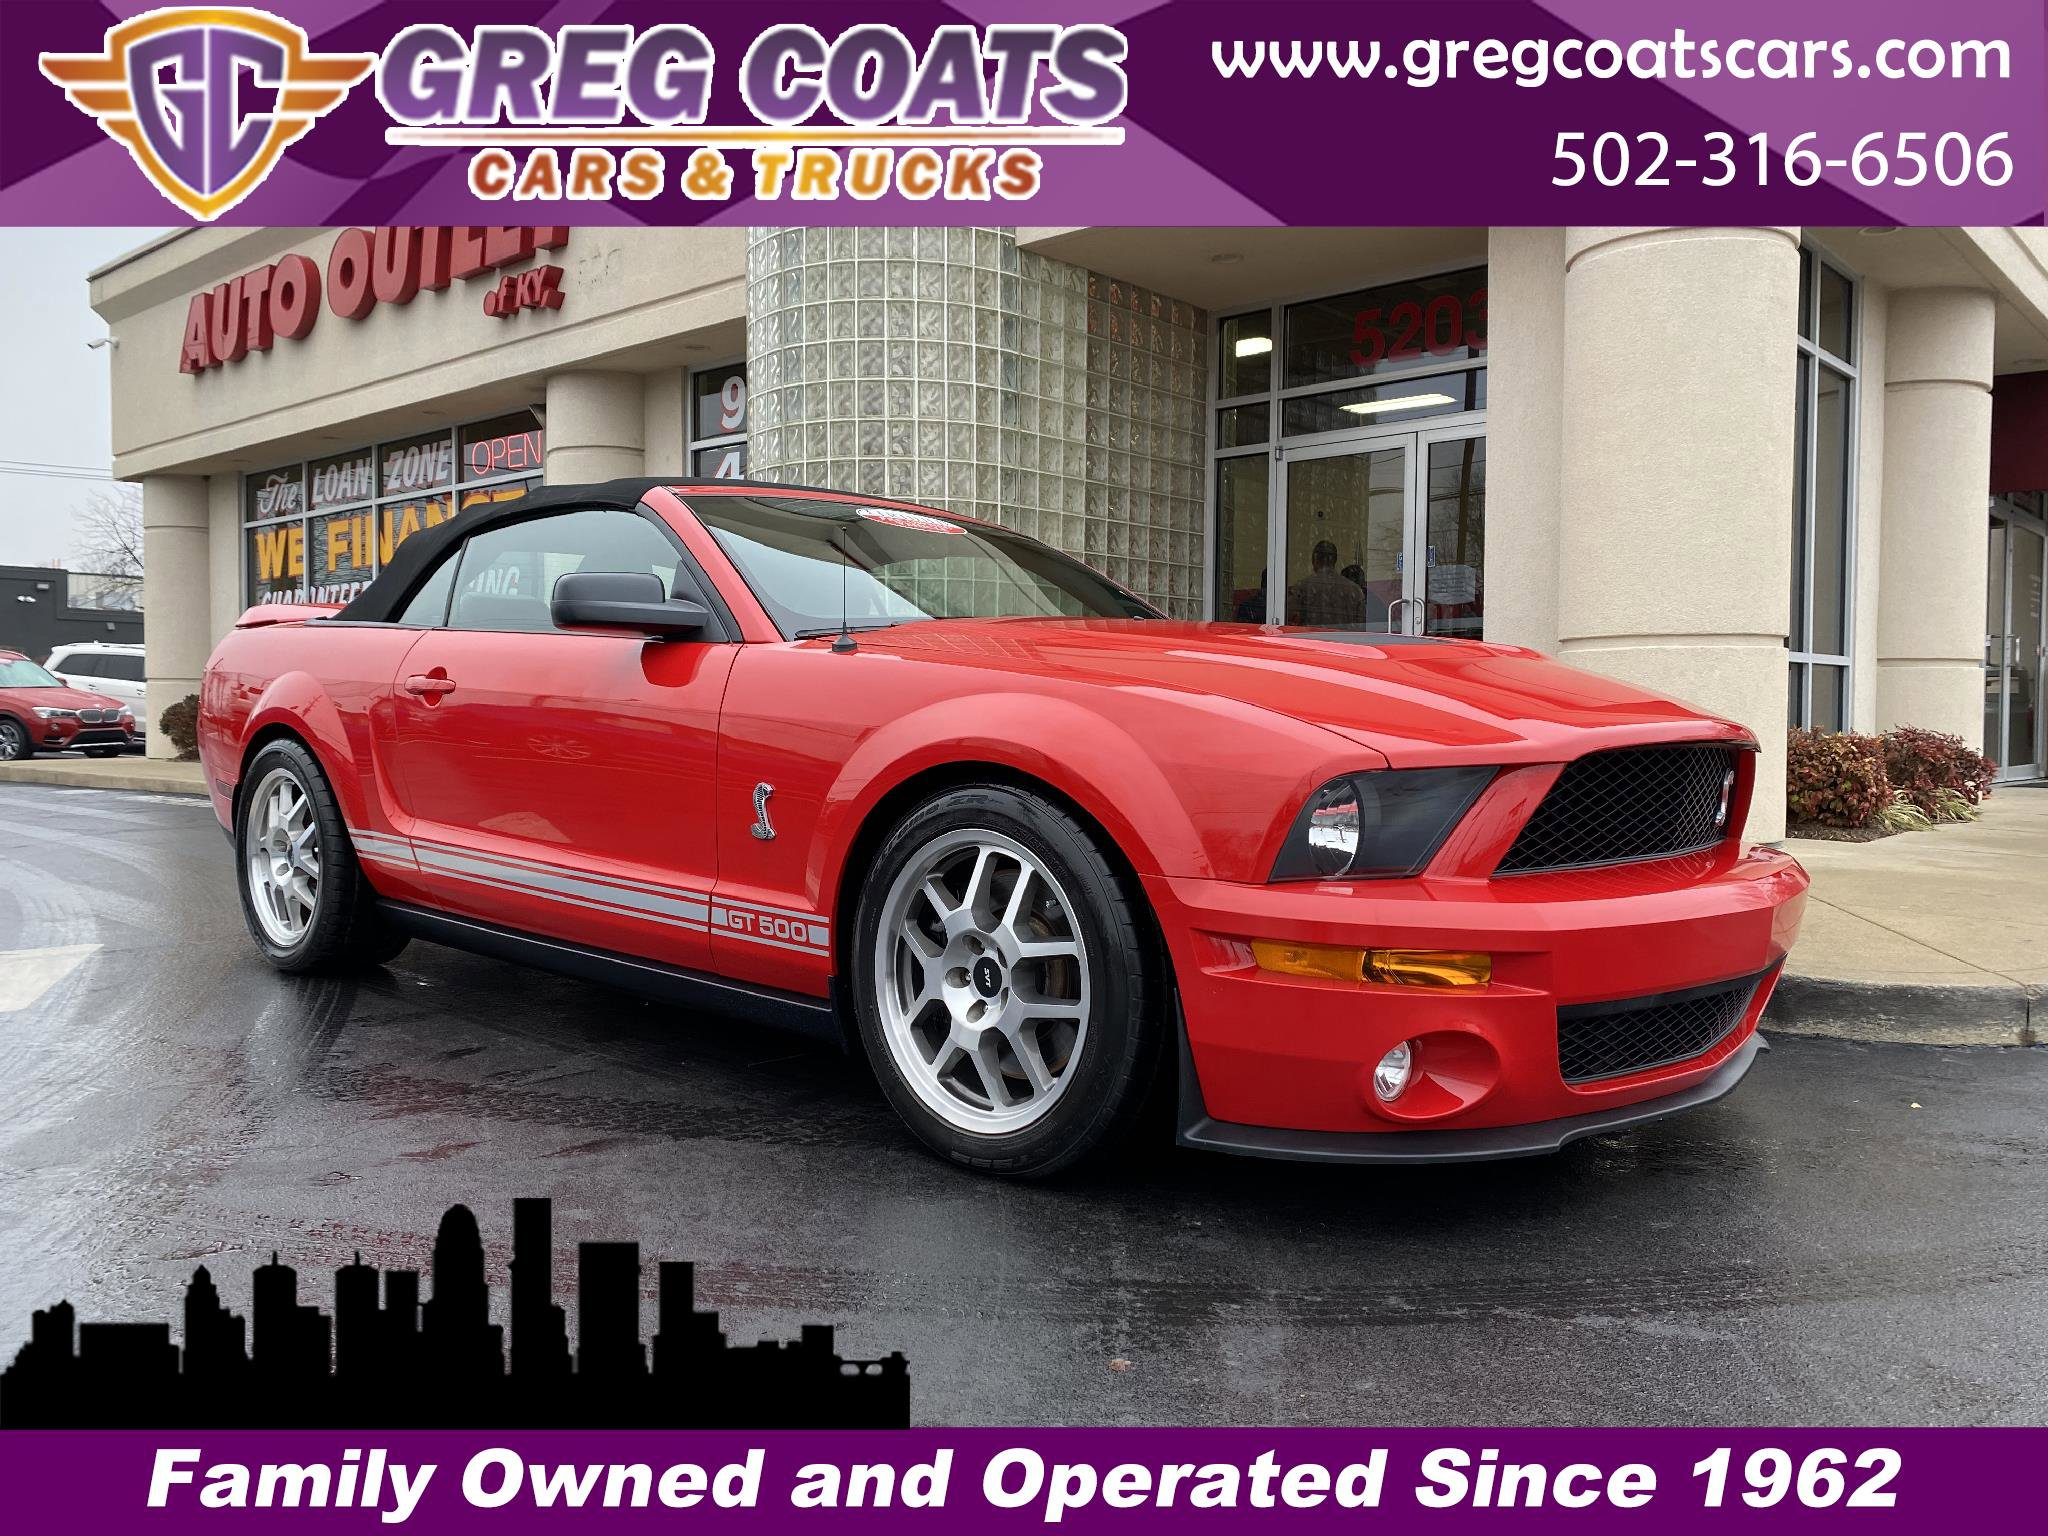 2007 Ford Mustang Convertible image